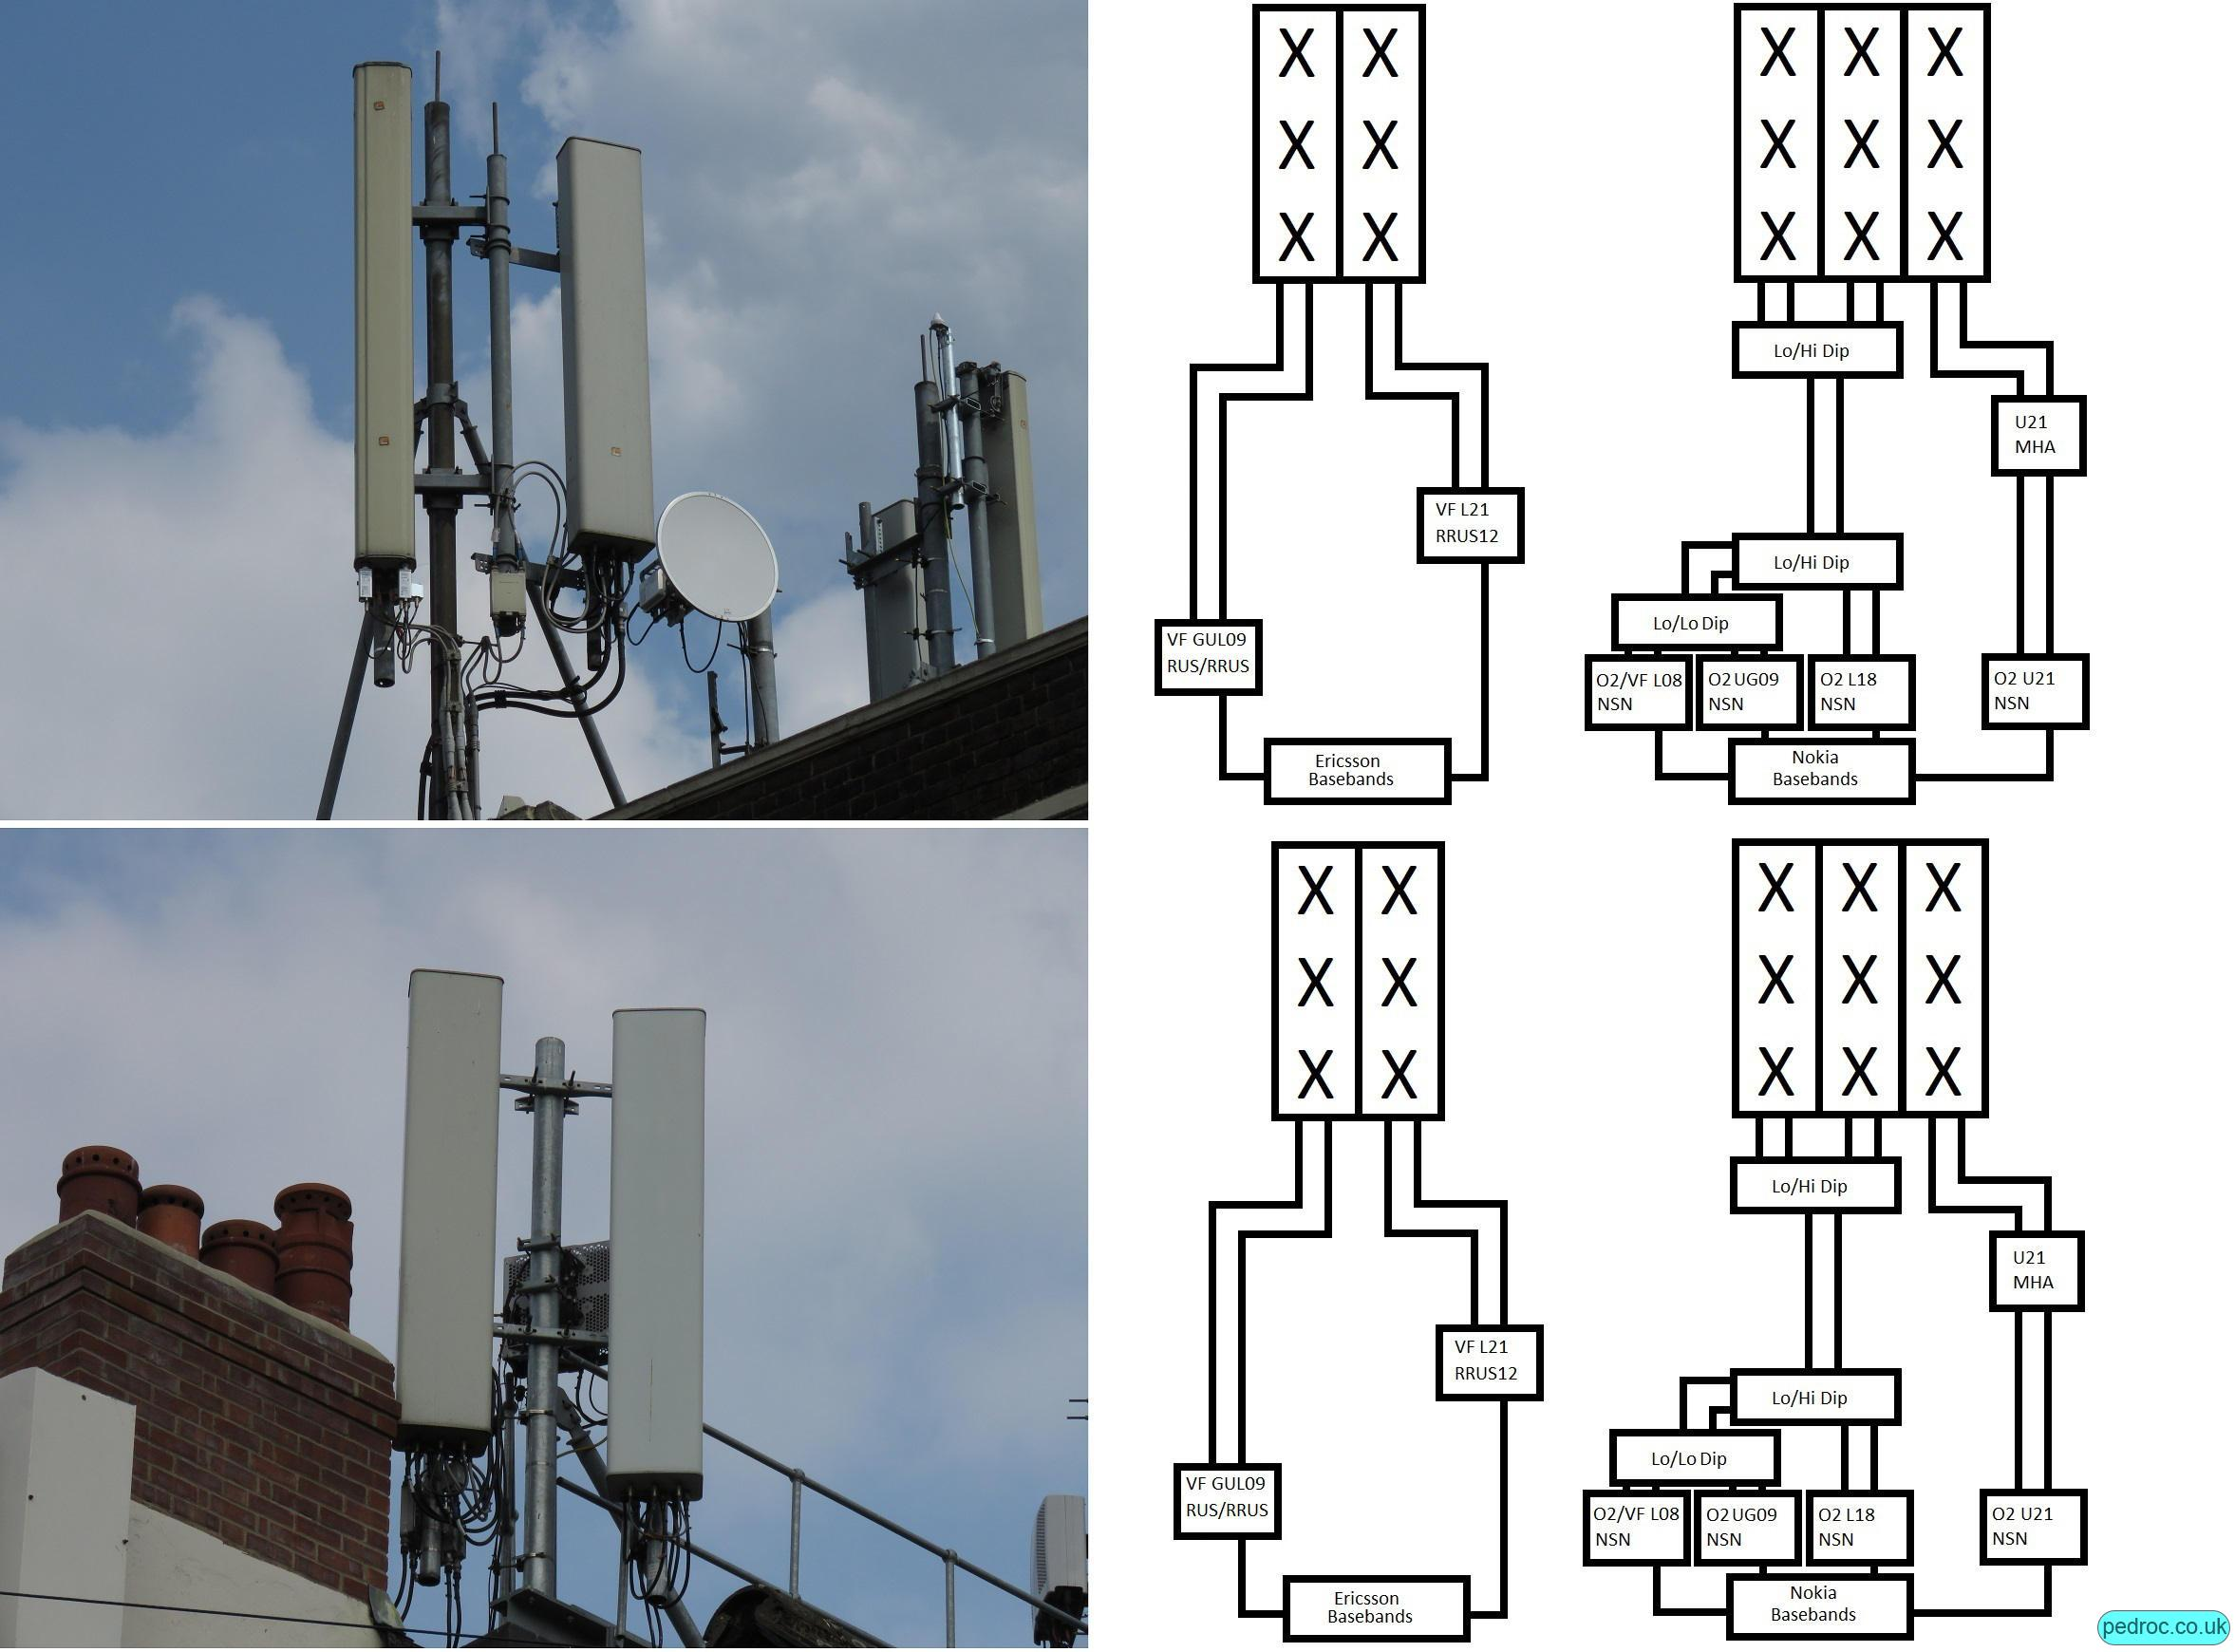 Two masts with LTE 900MHz in/around Leytonstone